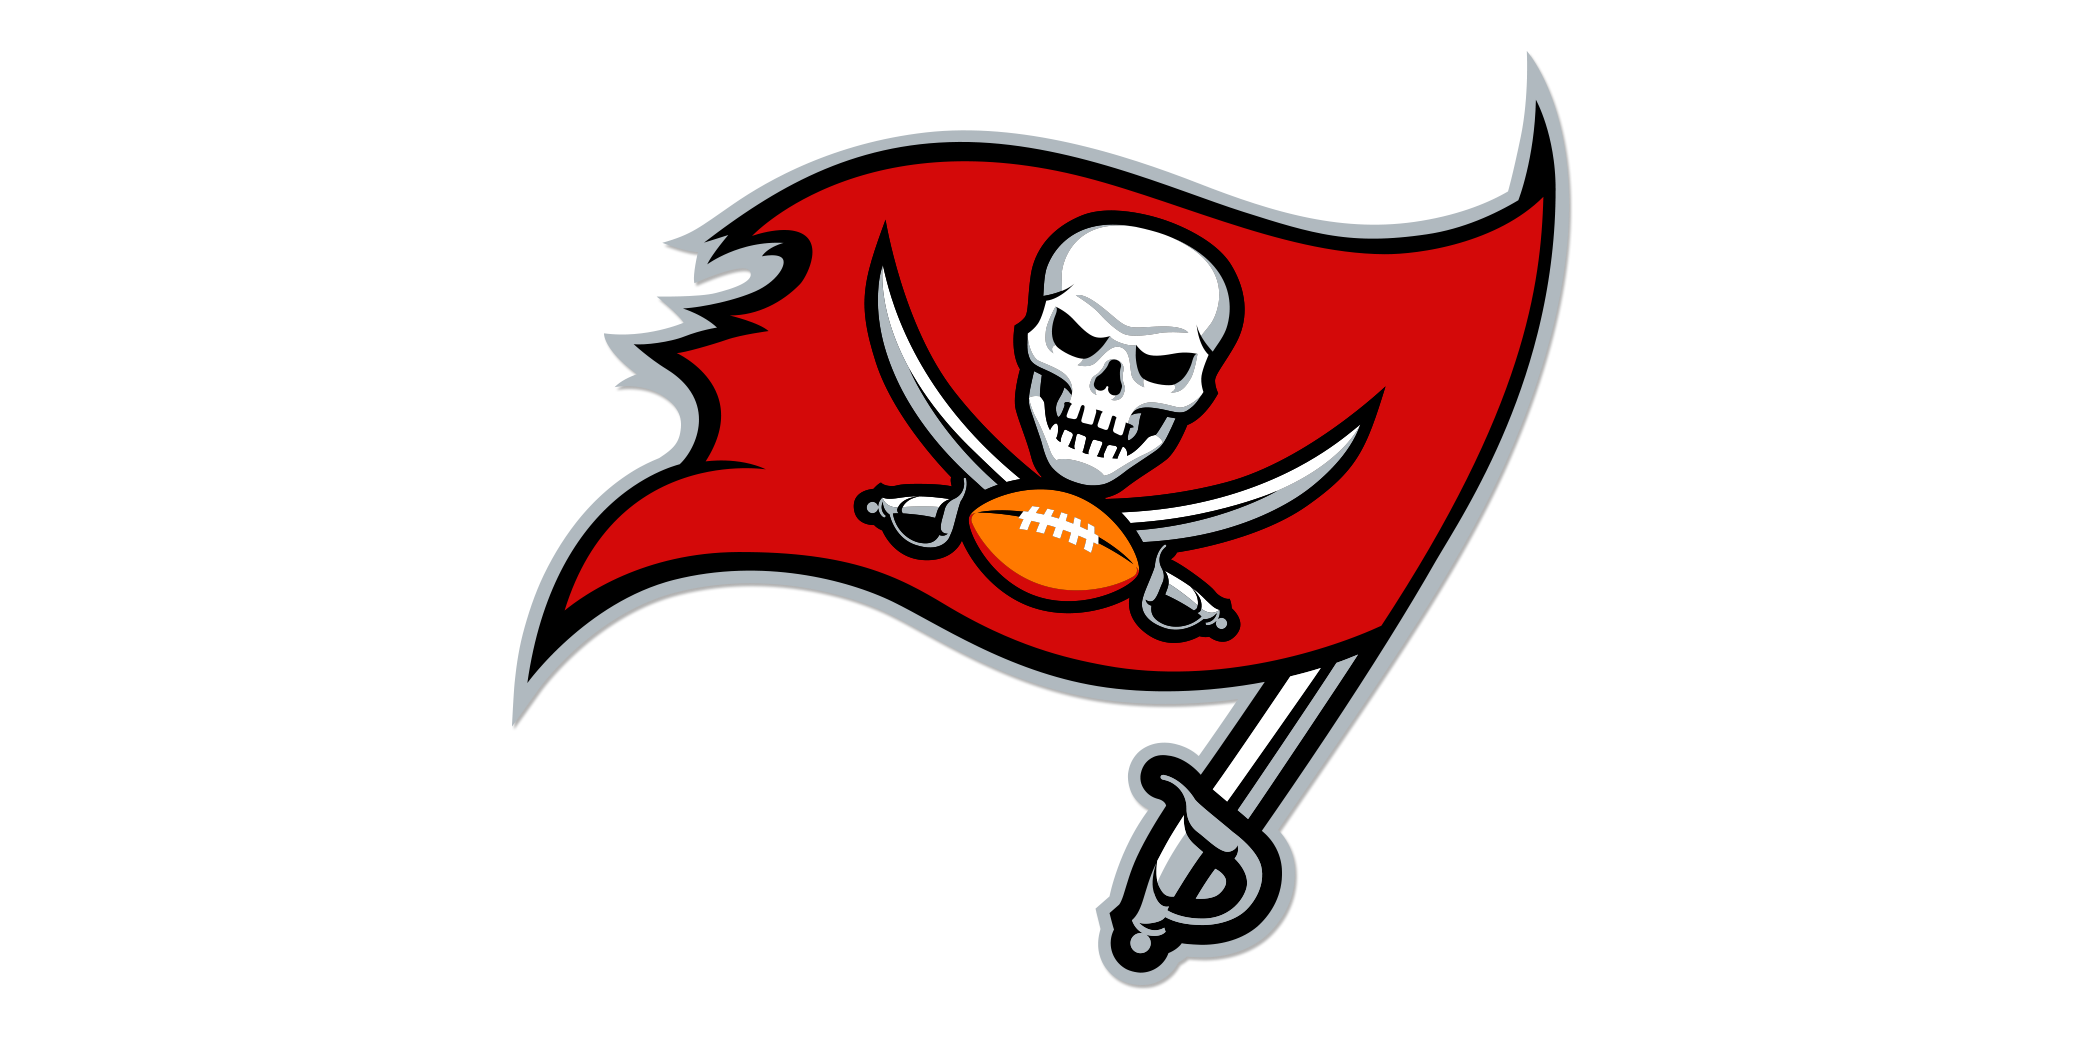 Tampa bay buccaneers logo buccaneers symbol meaning history and buccaneers logo biocorpaavc Images